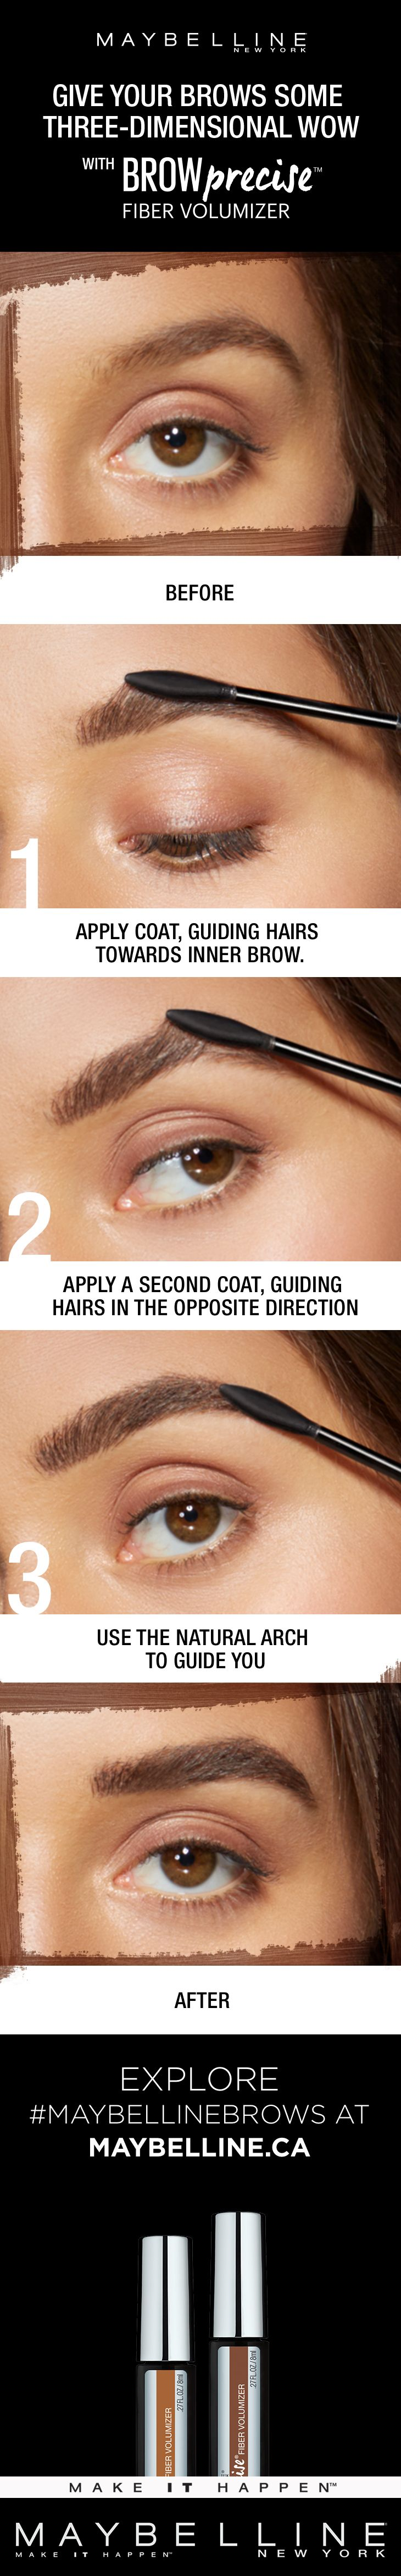 A step-by-step tutorial for getting your brows a three-dimensional WOW effect. Using Maybelline's Brow Precise Fiber Volumizer, this fiber-infused filling mascara is perfect for adding volume and colour for an instant brow boost. The tapered spoon brush achieves precise application from corner to corner. Get on-fleek brows in just a few easy strokes.